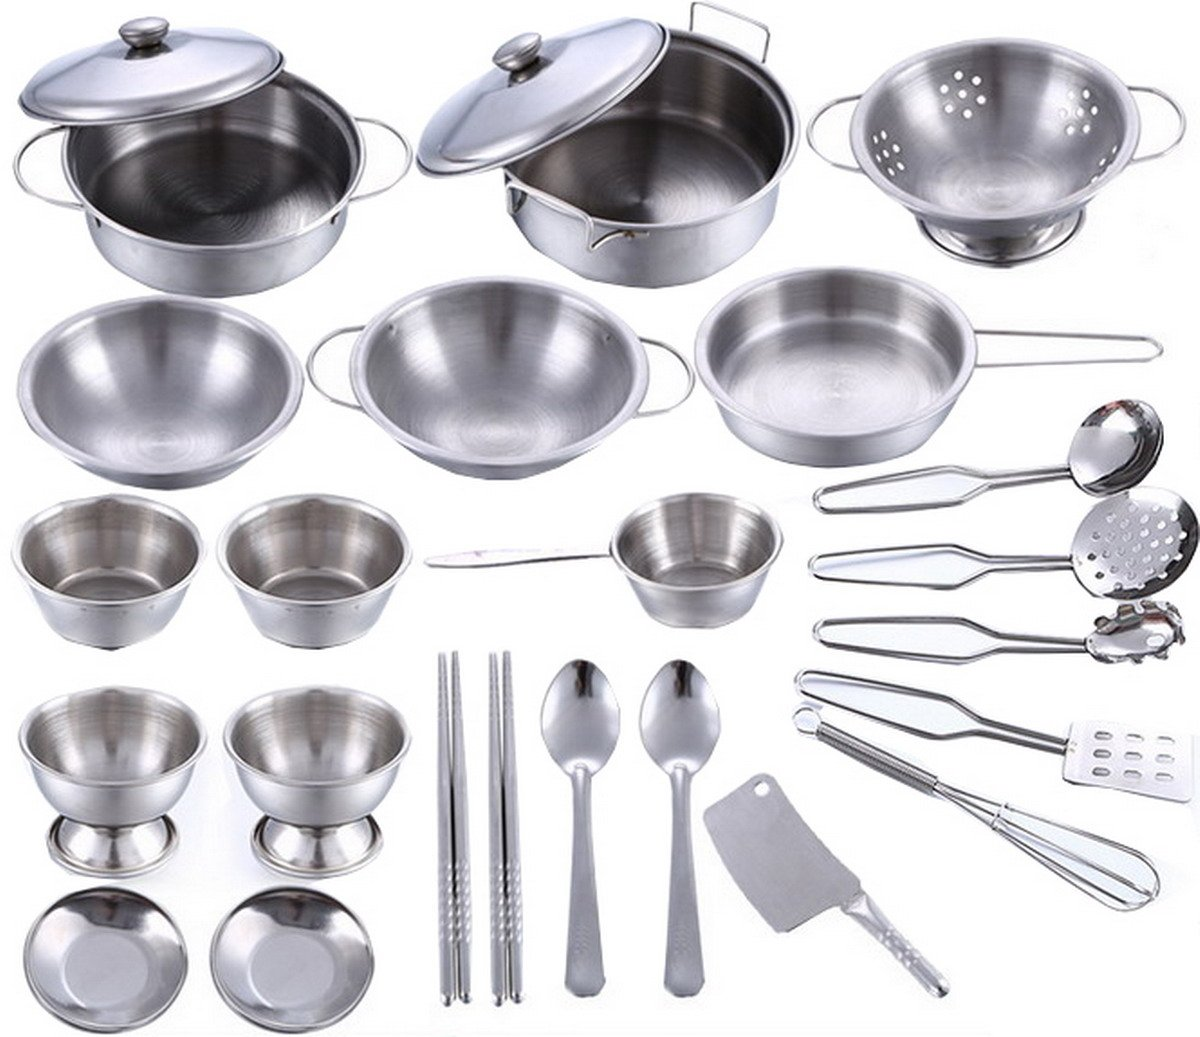 Playset Metal Pots and Pans Kitchen Cookware for Kids with Cooking Utensils Set 0f 25